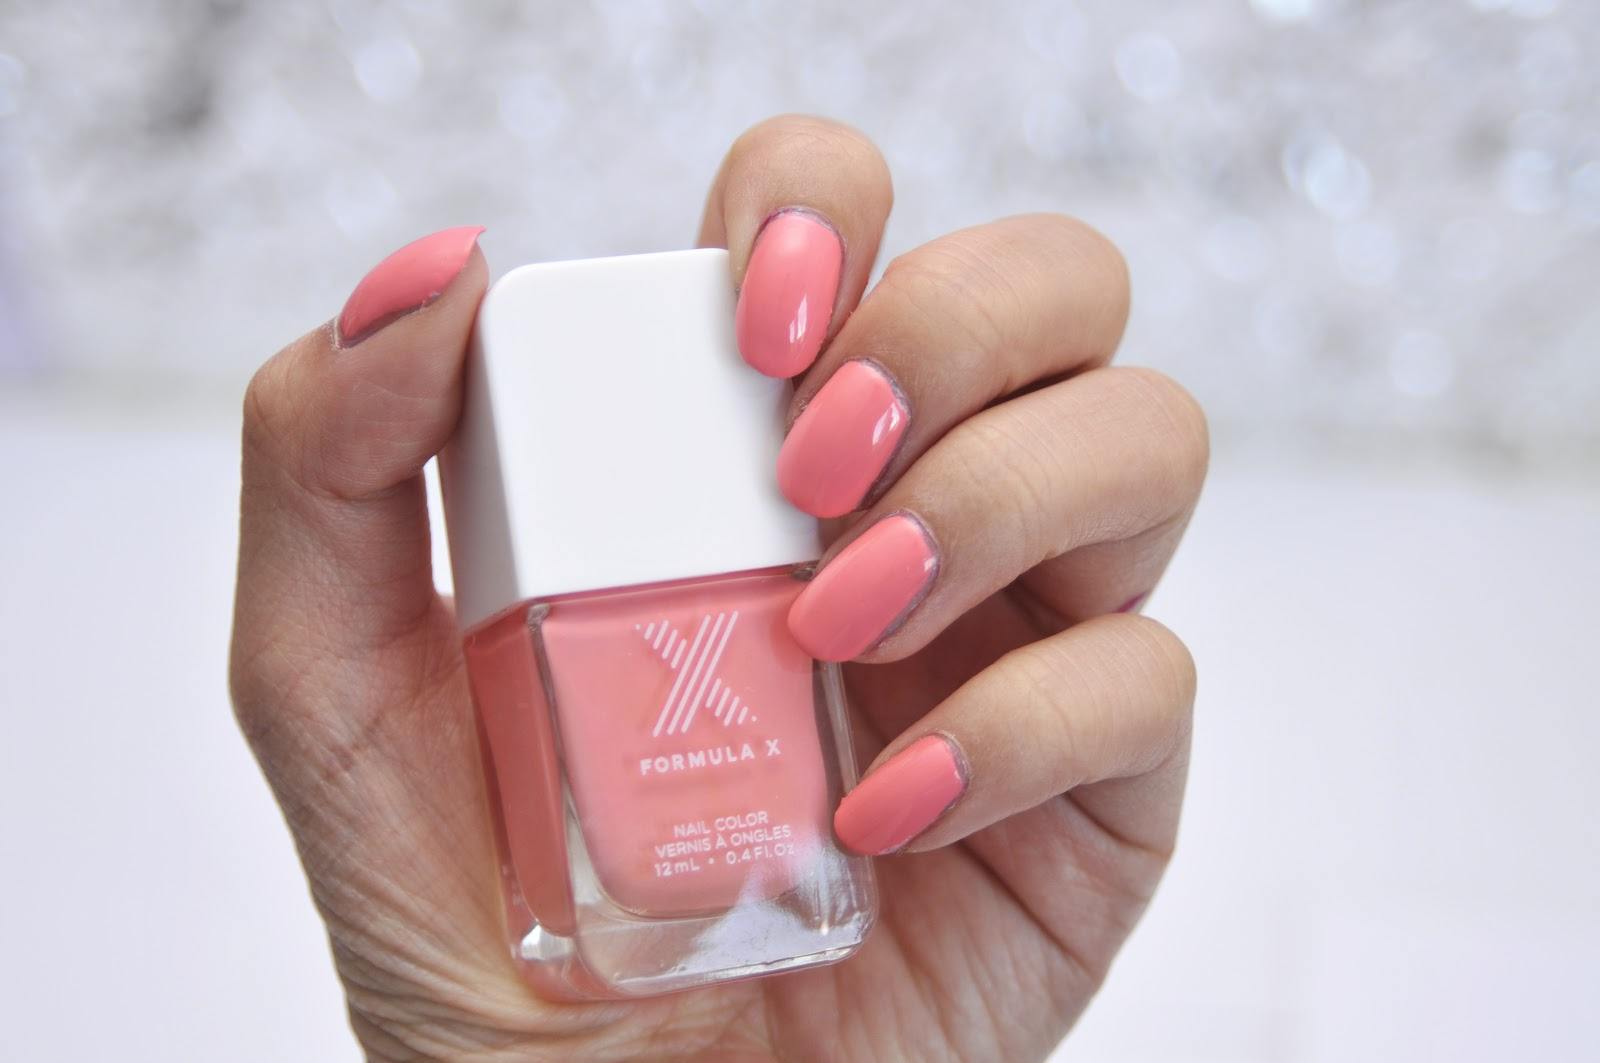 Fun Size Beauty Sephora Formula X Nail Polishes In Tgif